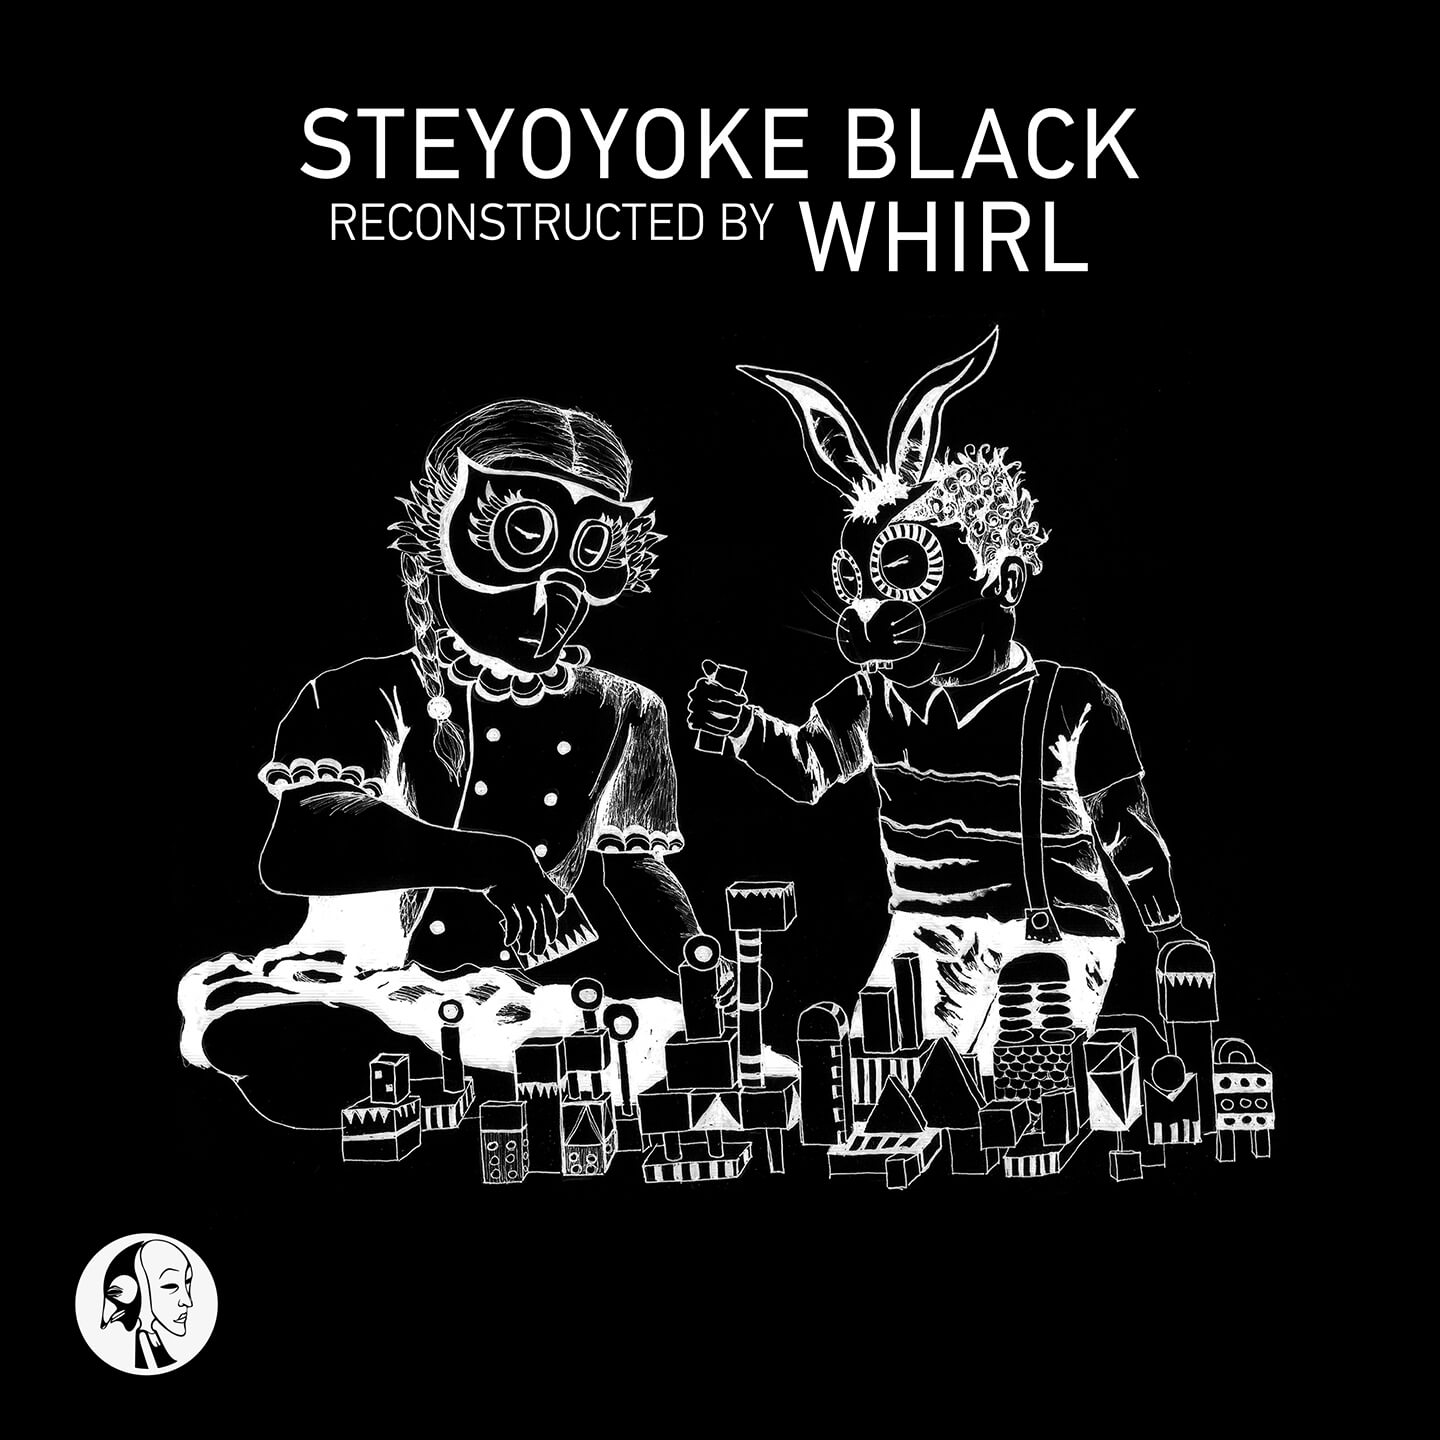 SYYKBLK054 - Steyoyoke Black - Reconstructed By Whirl